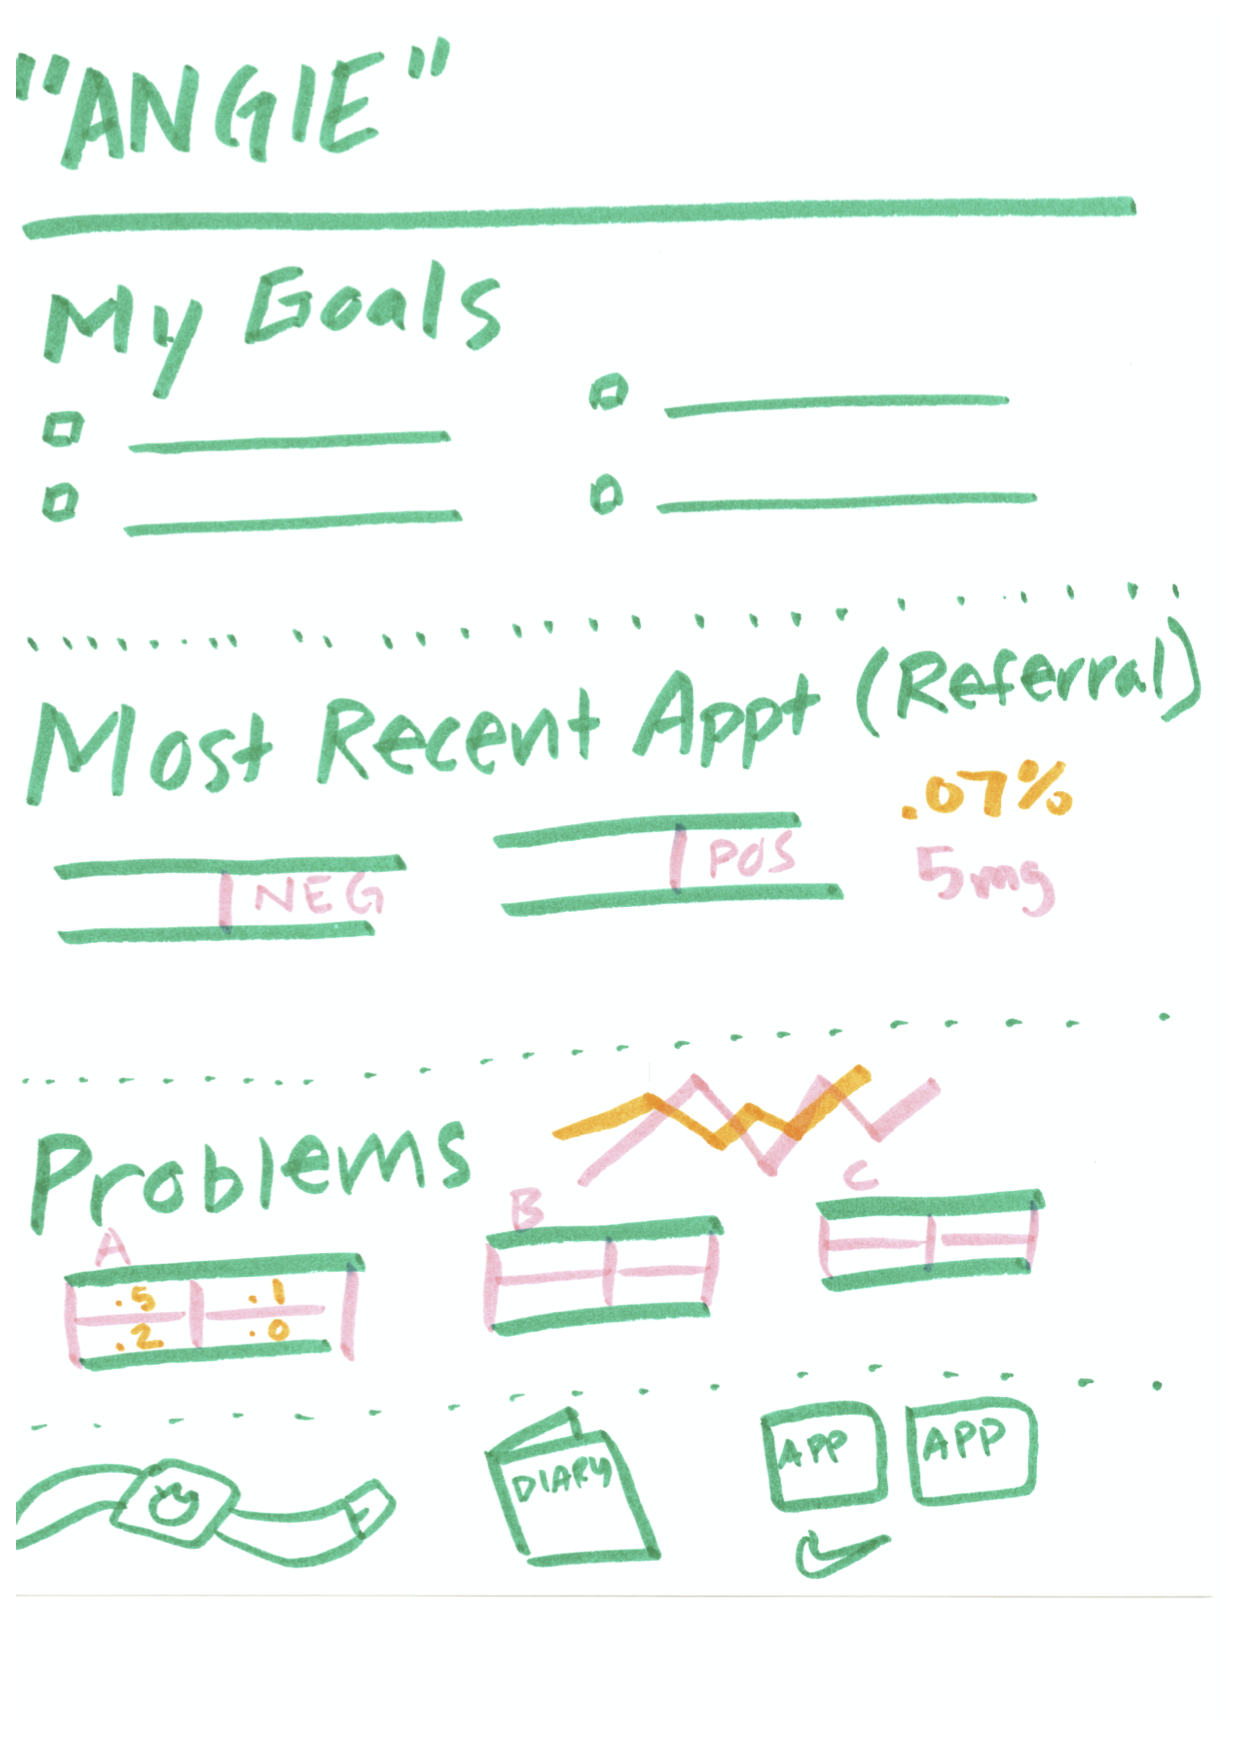 A wireframe of a patient data interface with a spot for patient goals labeled prominently at the top of the page